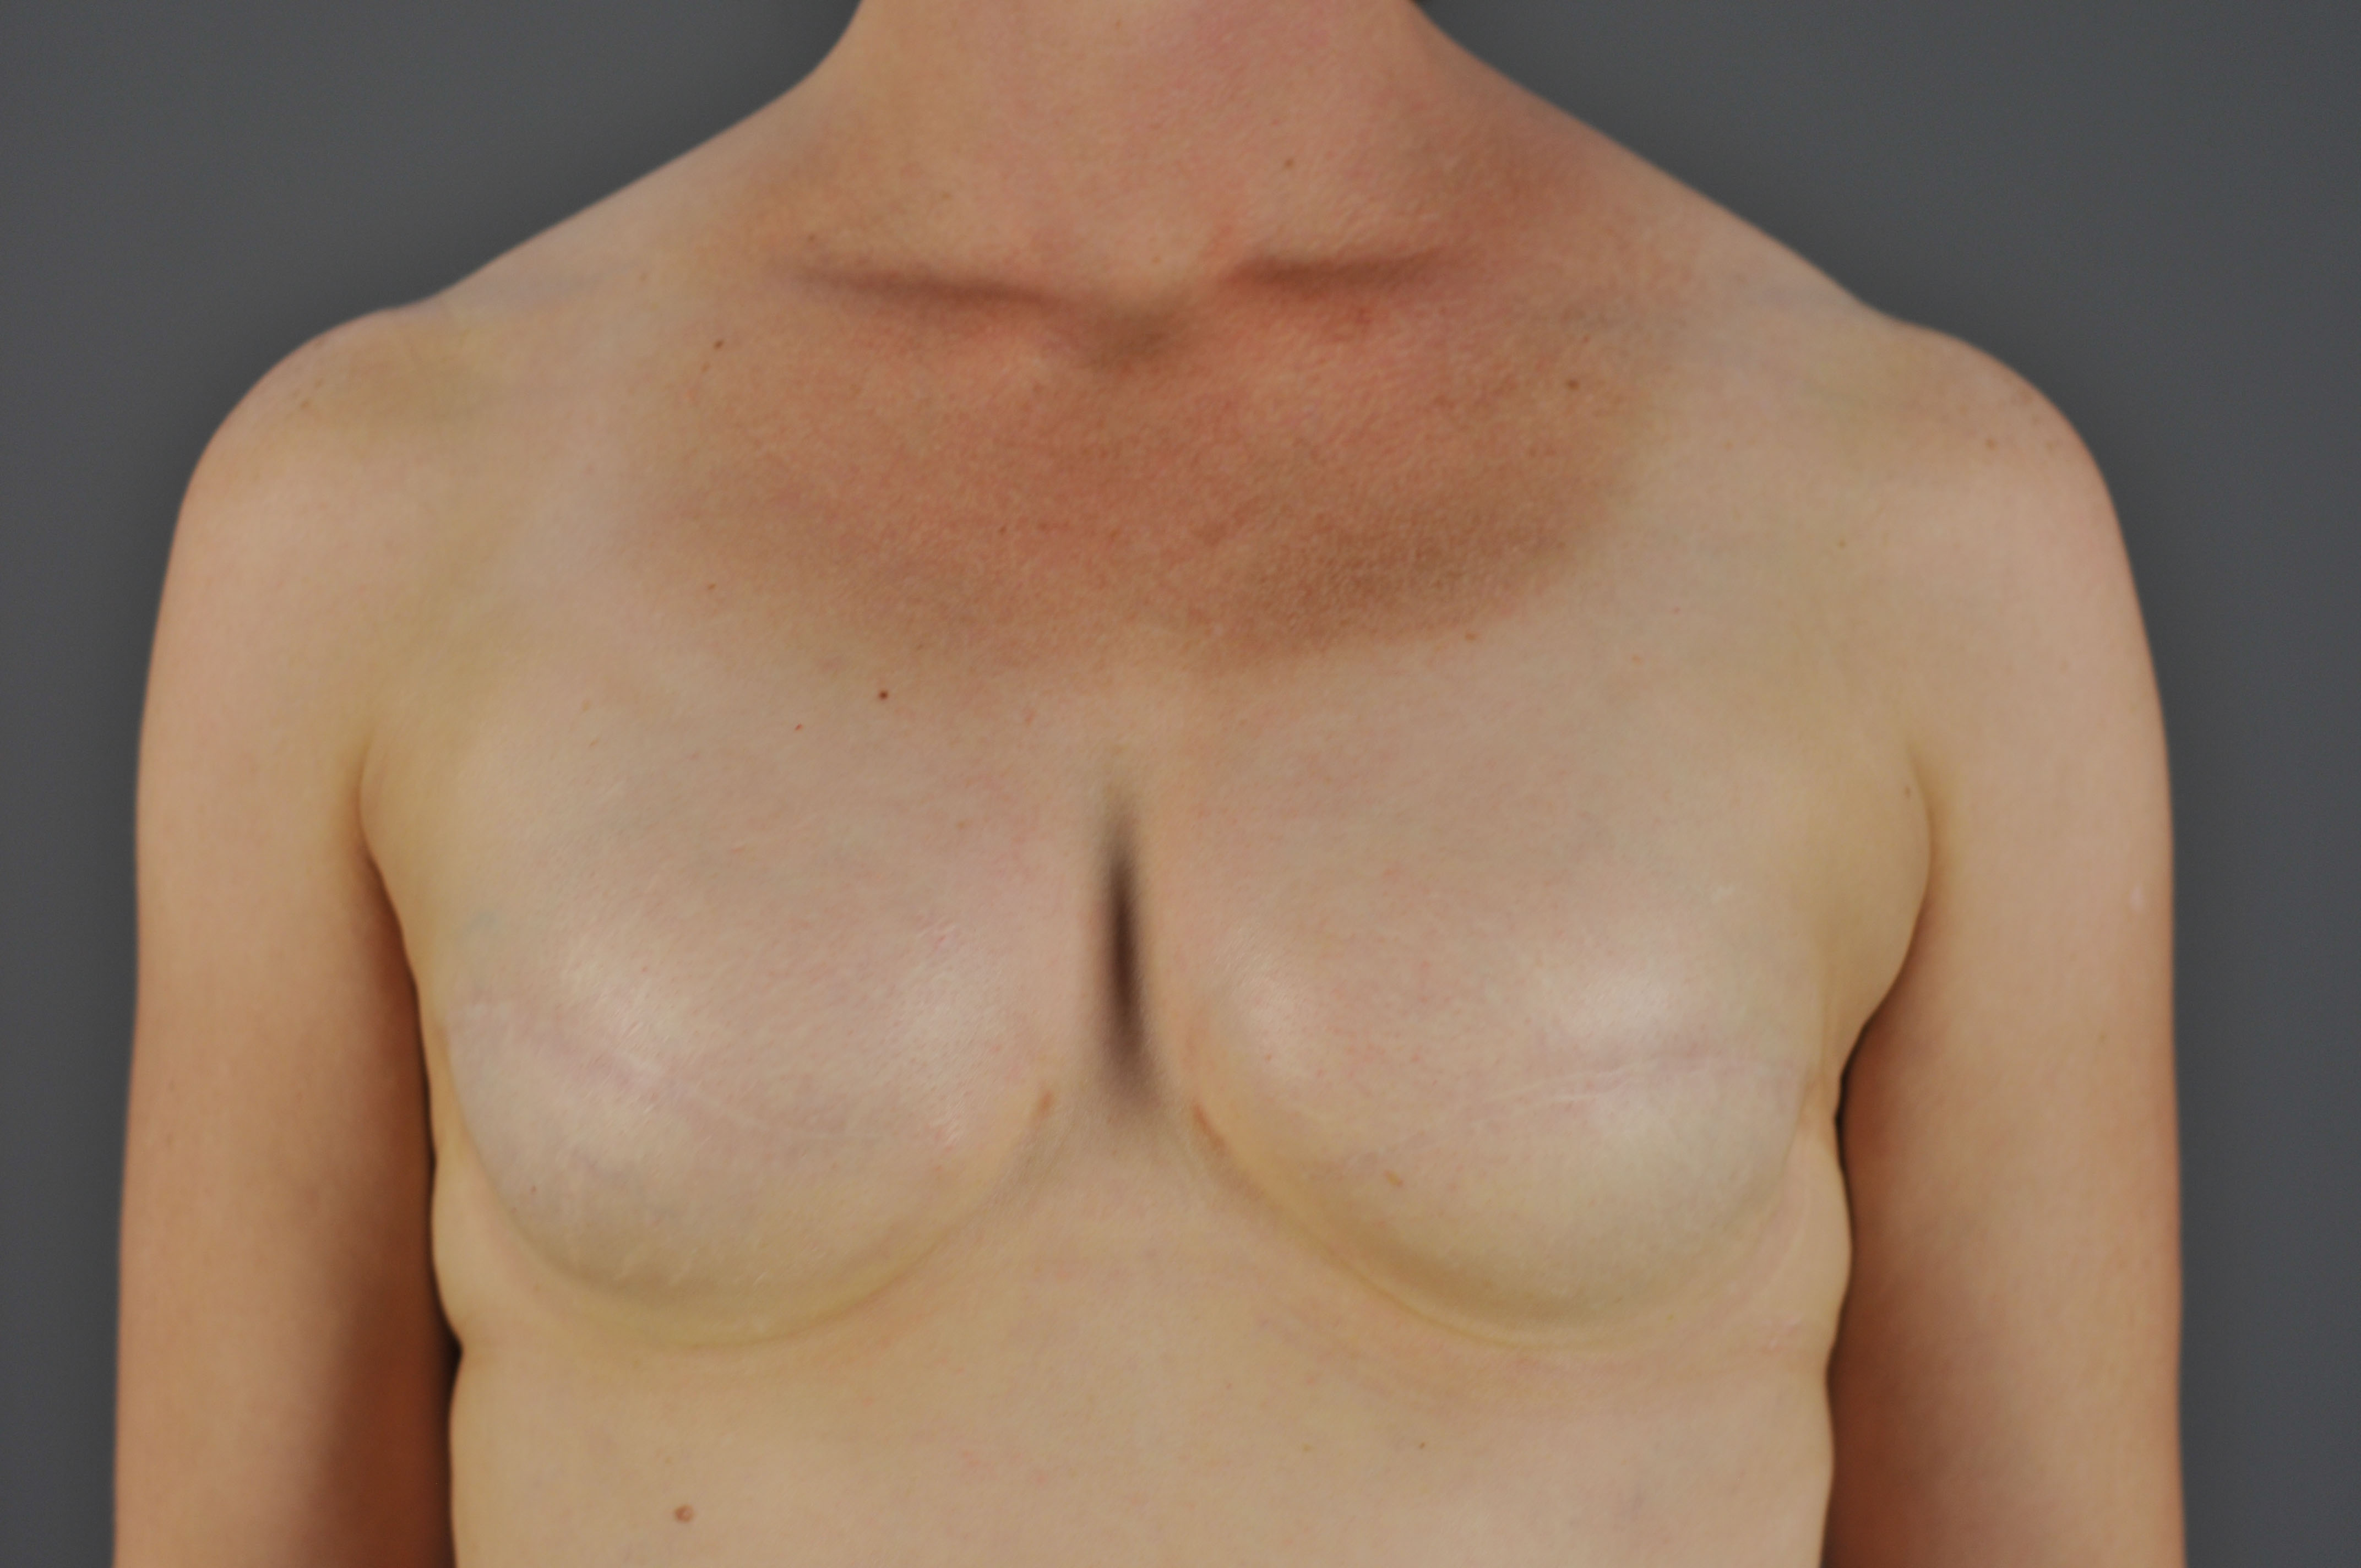 Breast reconstruction following surgery breast cancer pic 394